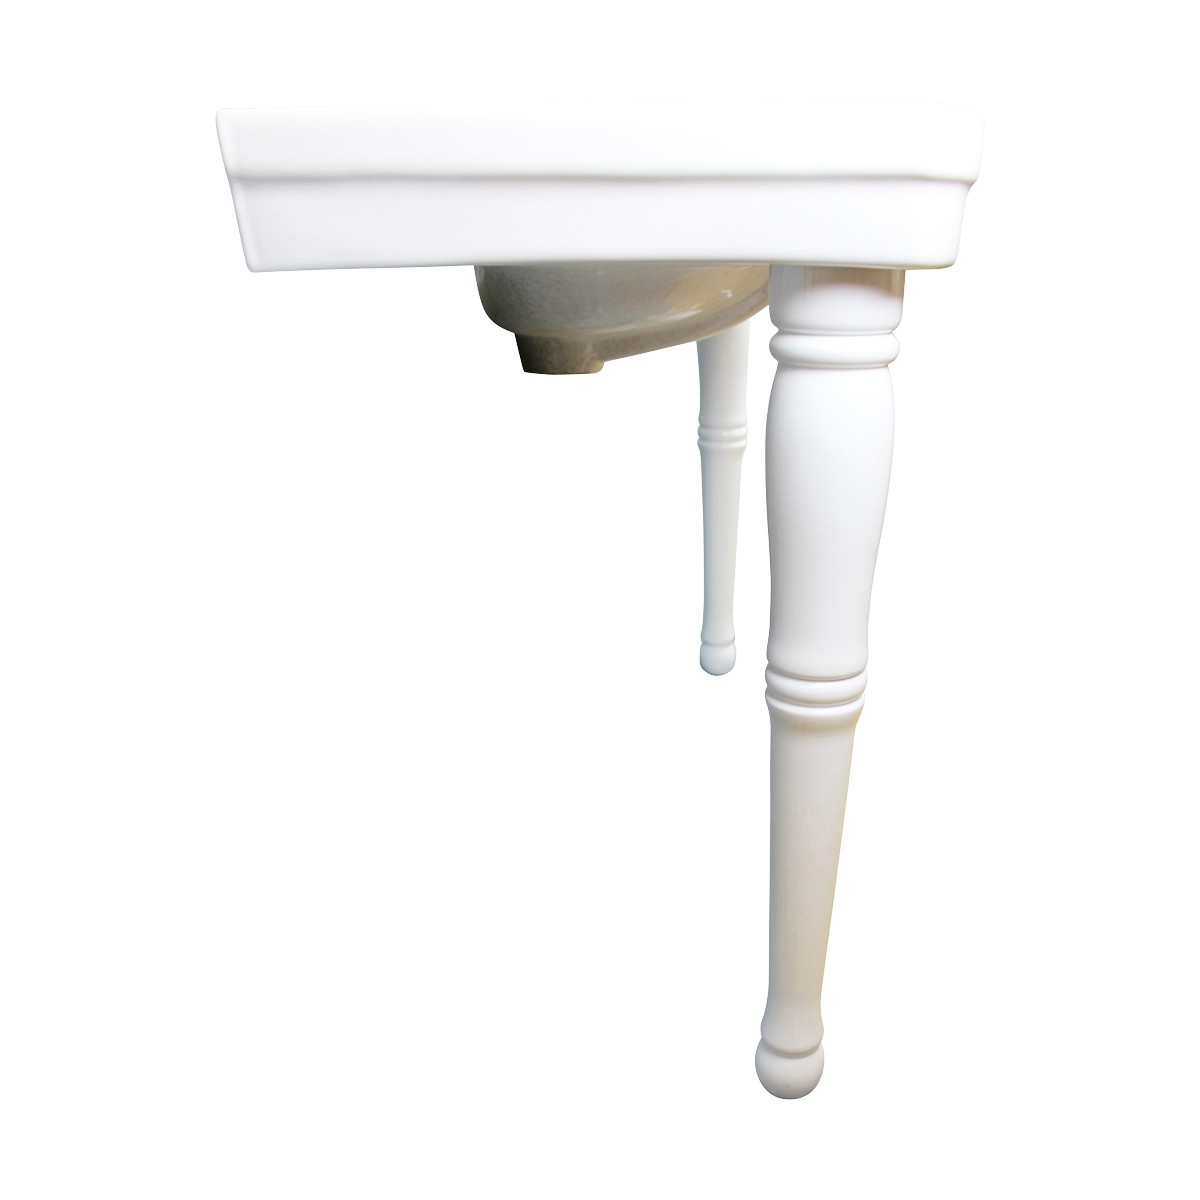 White Wall Mount Bathroom Console Double Basin Sink with Spindle Leg Support Porcelain Console Sink Double Basin Console Sink With Spindle Legs Glossy Console Bathroom Sink